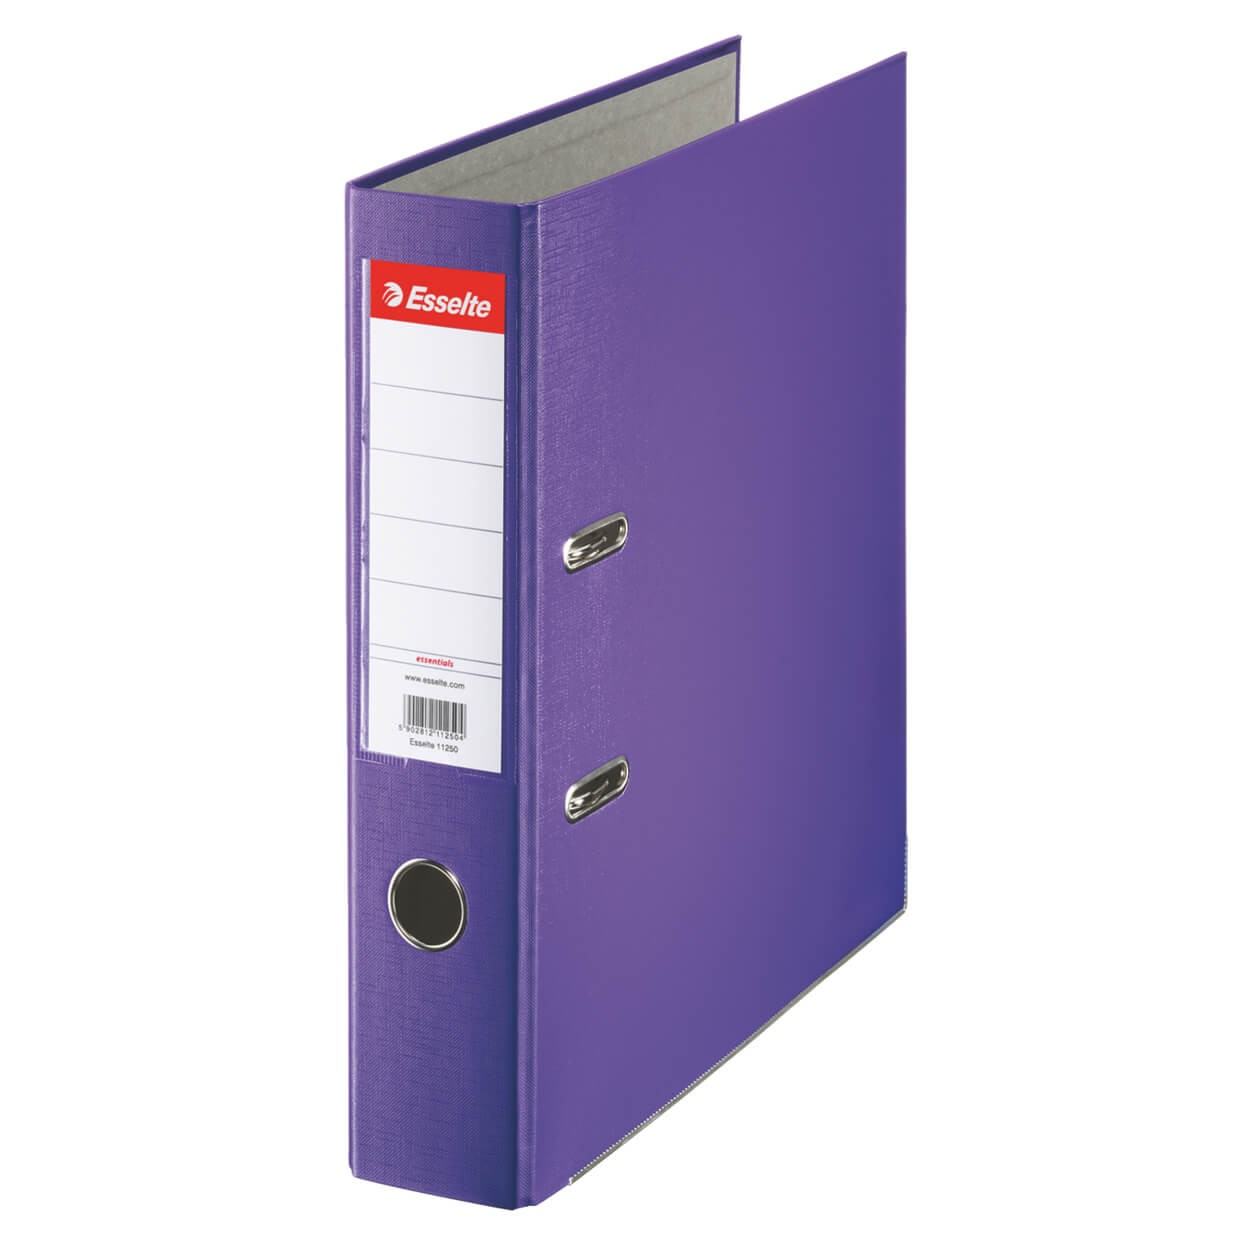 LEVER ARCH FILE - PVC A4 70mm PURPLE - MULTI BUY DISCOUNT AVAILABLE!!